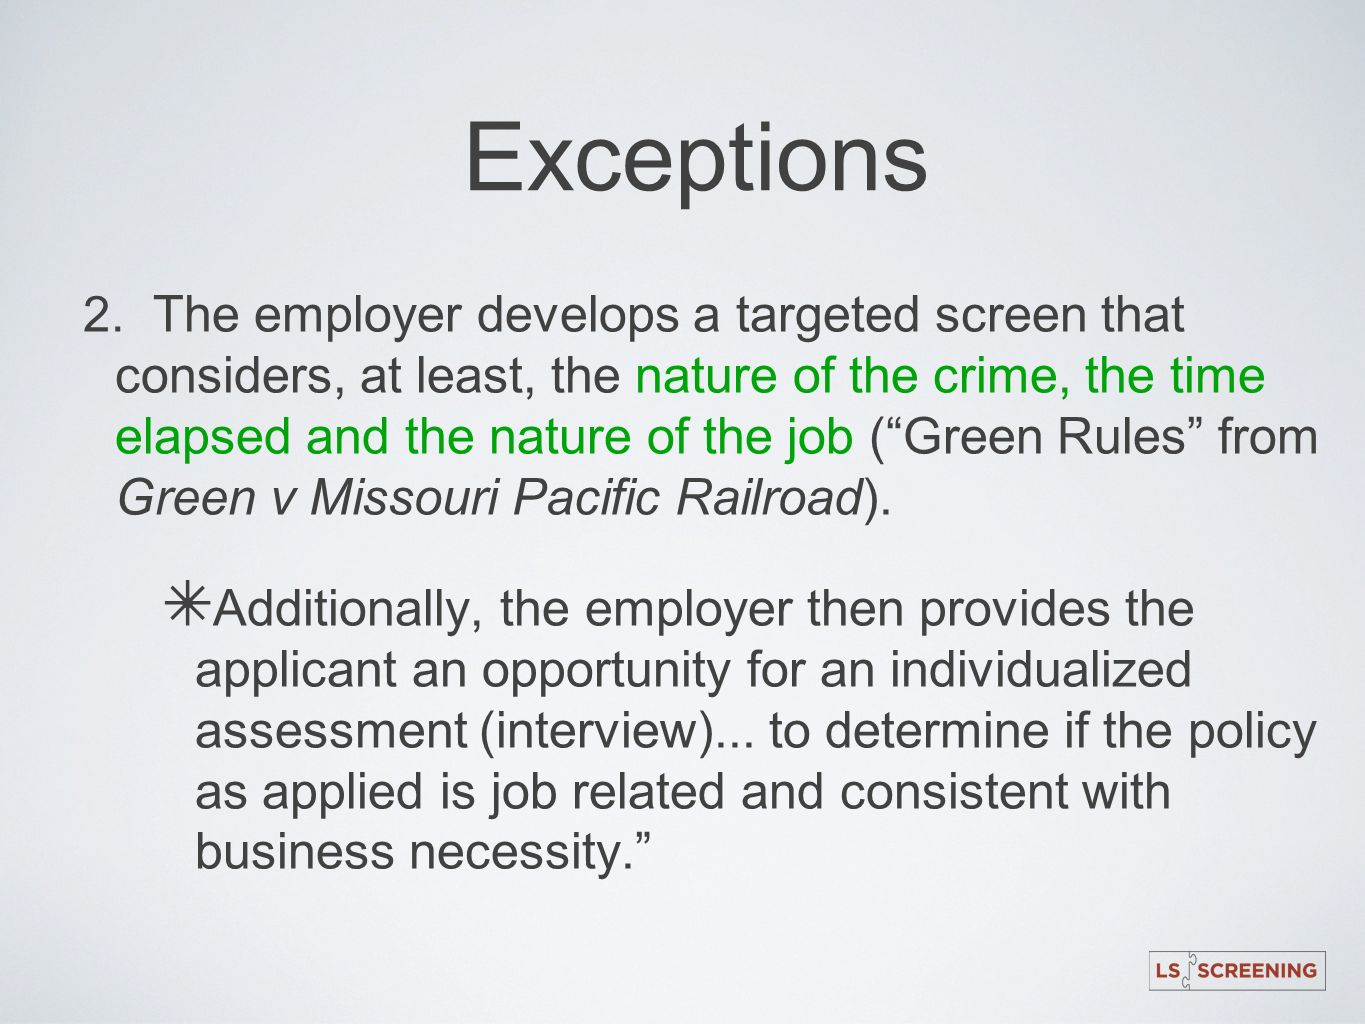 Exceptions 2. The employer develops a targeted screen that considers, at least, the nature of the crime, the time elapsed and the nature of the job (G